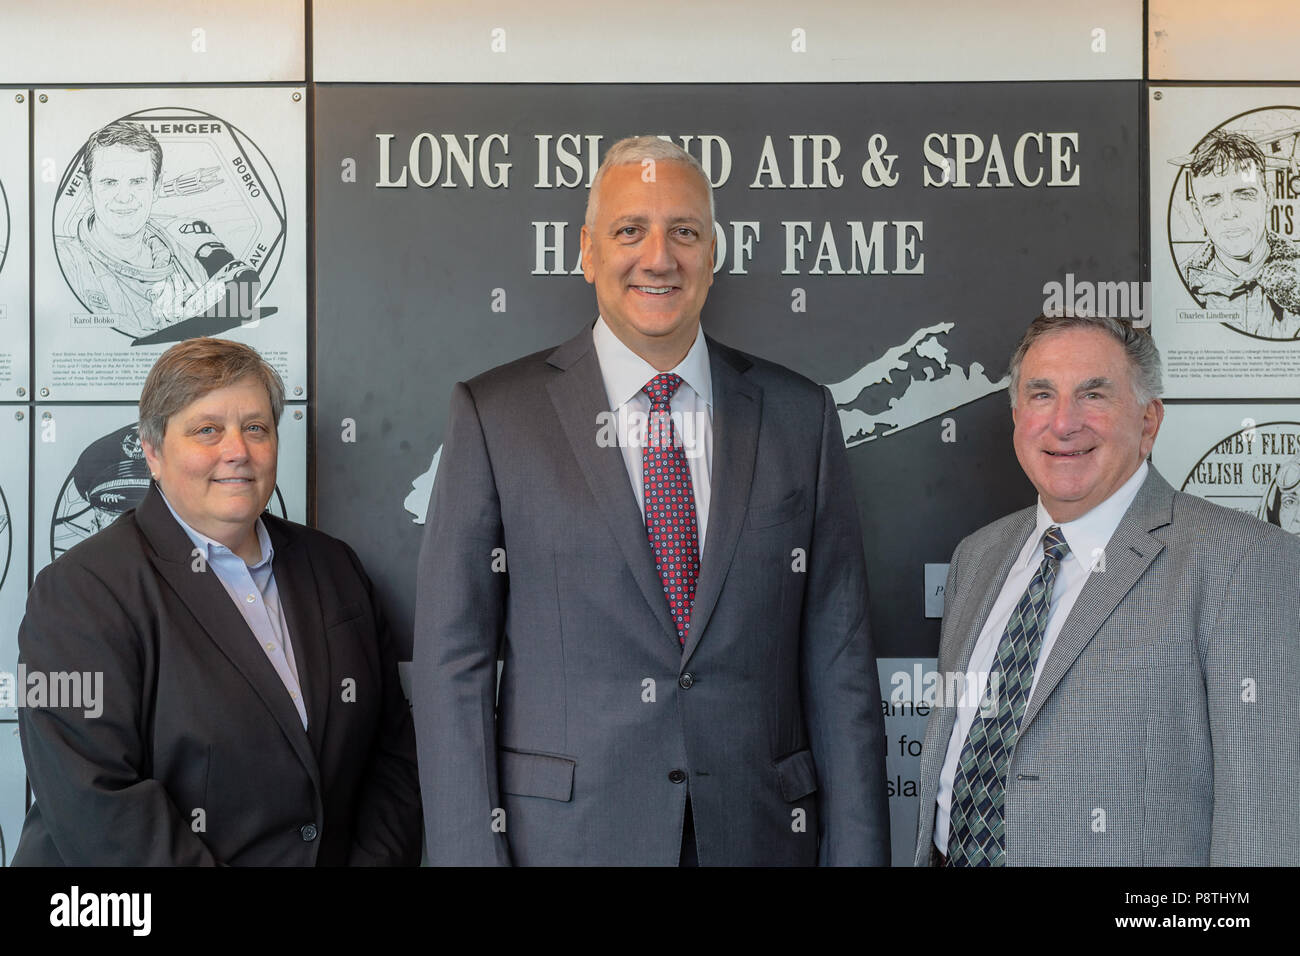 Garden City, New York, USA. June 21, 2018. L-R, DEBORAH HENLEY, VP Executive Editor of Newsday, representing inductee aviator and Newsday founder Alicia Patterson; Inductee former NASA astronaut MIKE MASSIMINO; and LOUIS MANCUSO JR, representing his parents, inductees Louis and Carol Mancuso, pose at Long Island Air & Space Hall of Fame Wall at Cradle of Aviation Museum during Class of 2018 Induction. - Stock Image